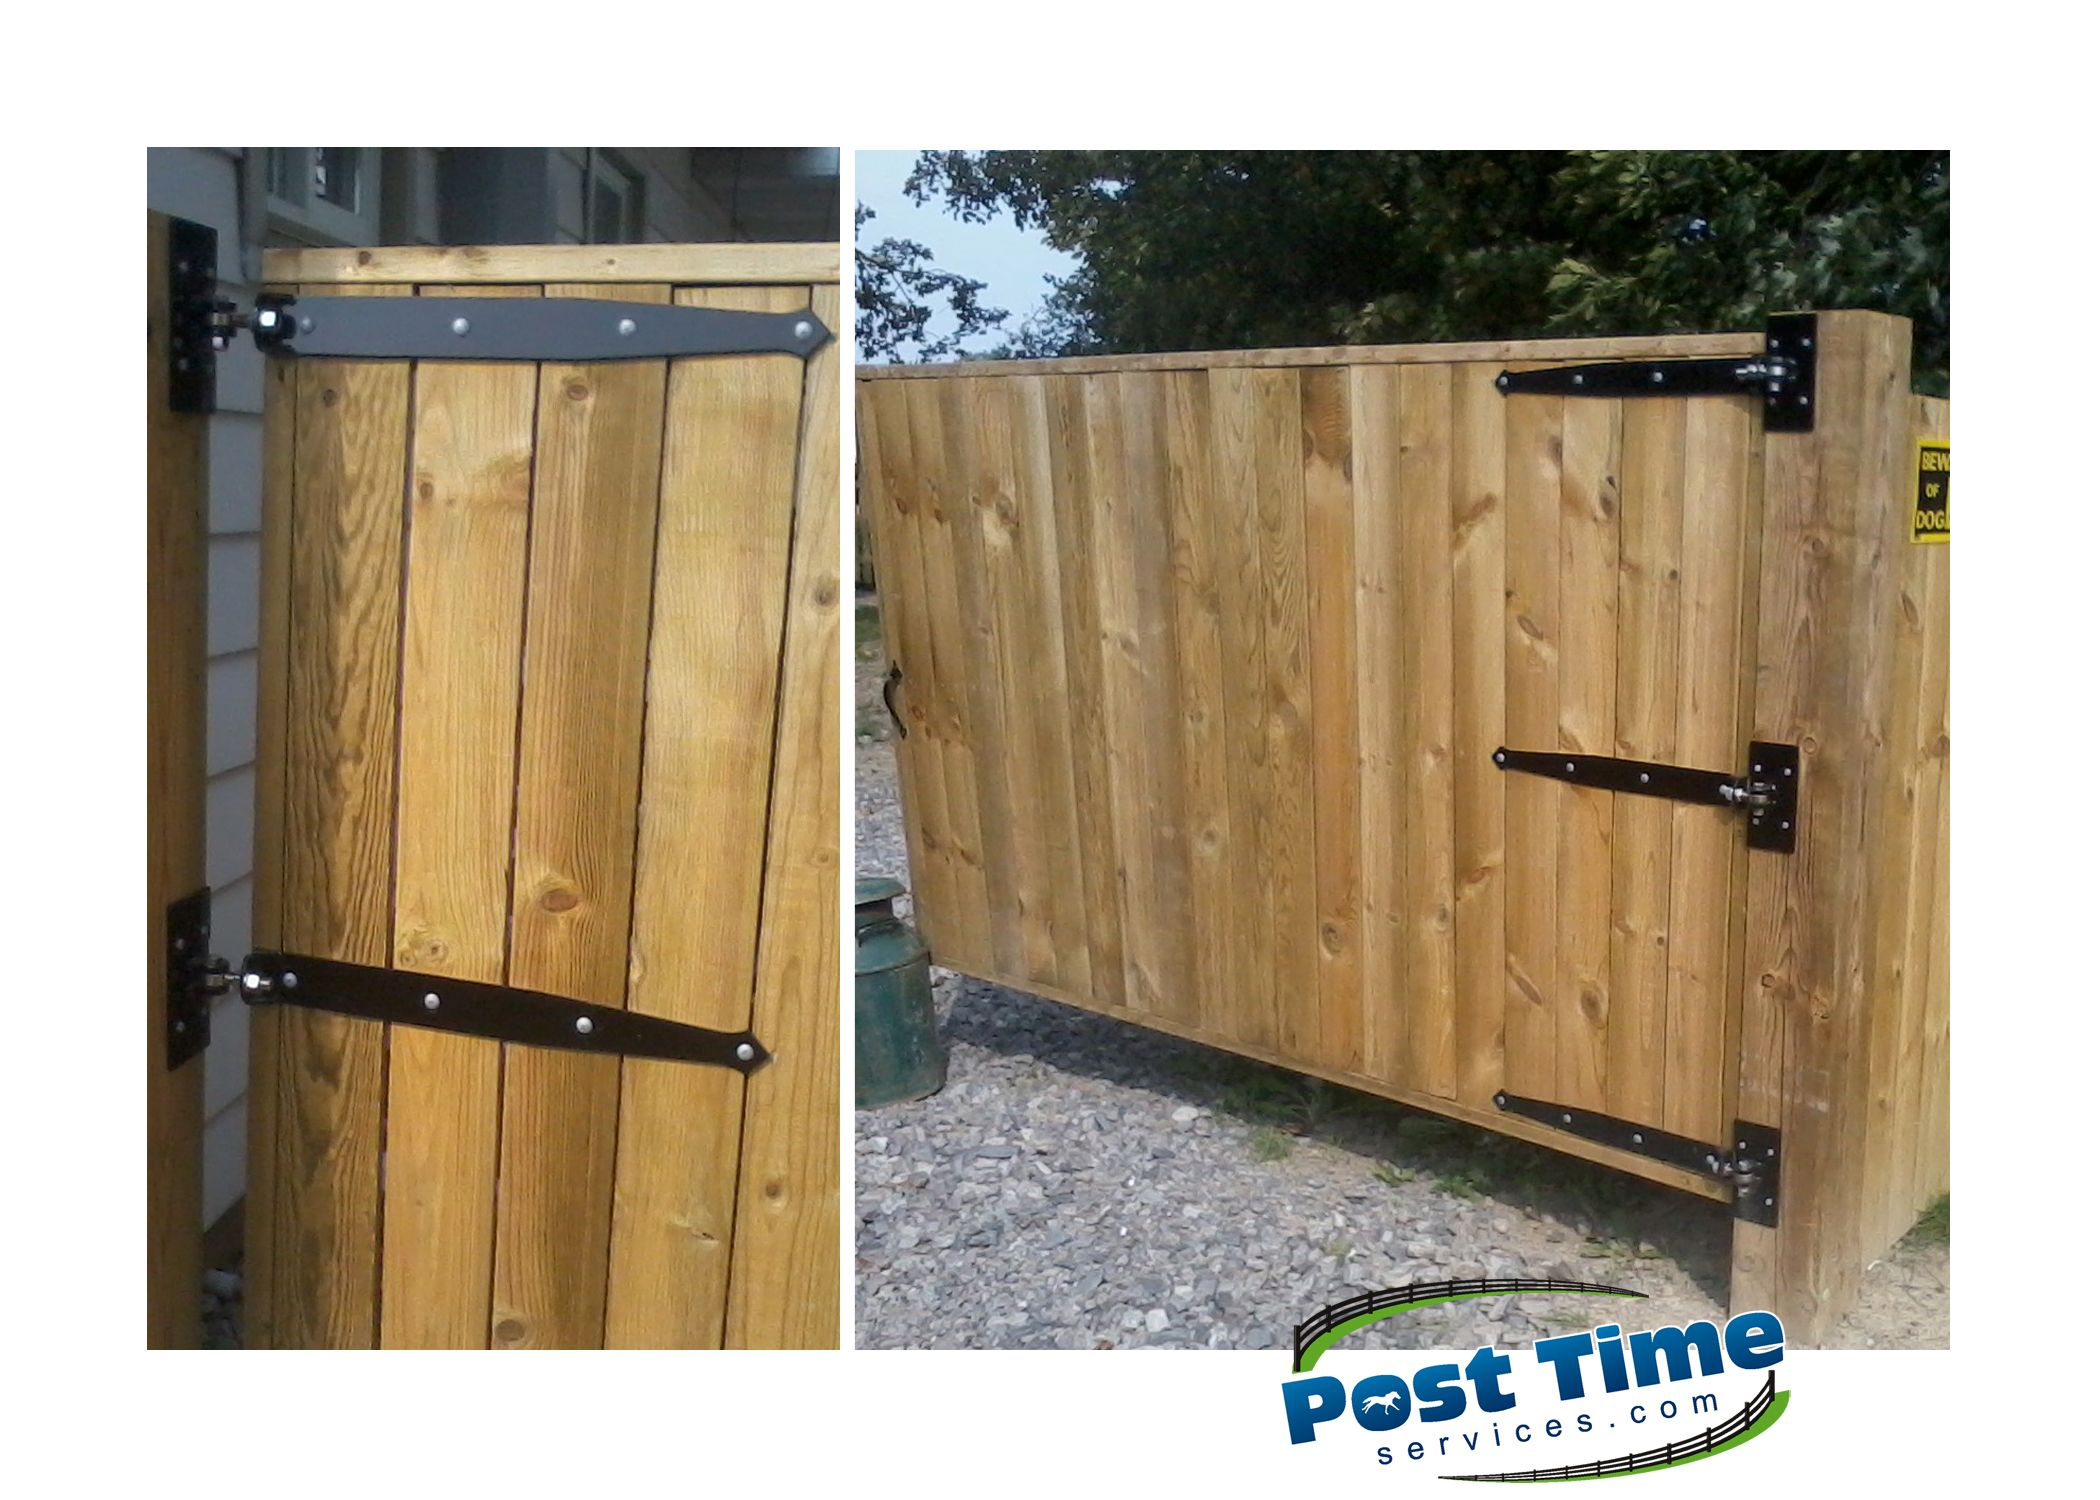 This Wood Driveway Gate Hangs Off A Solid Post With Long Heavy Duty  Adjustable Black Hinges, Available At Post Time Services